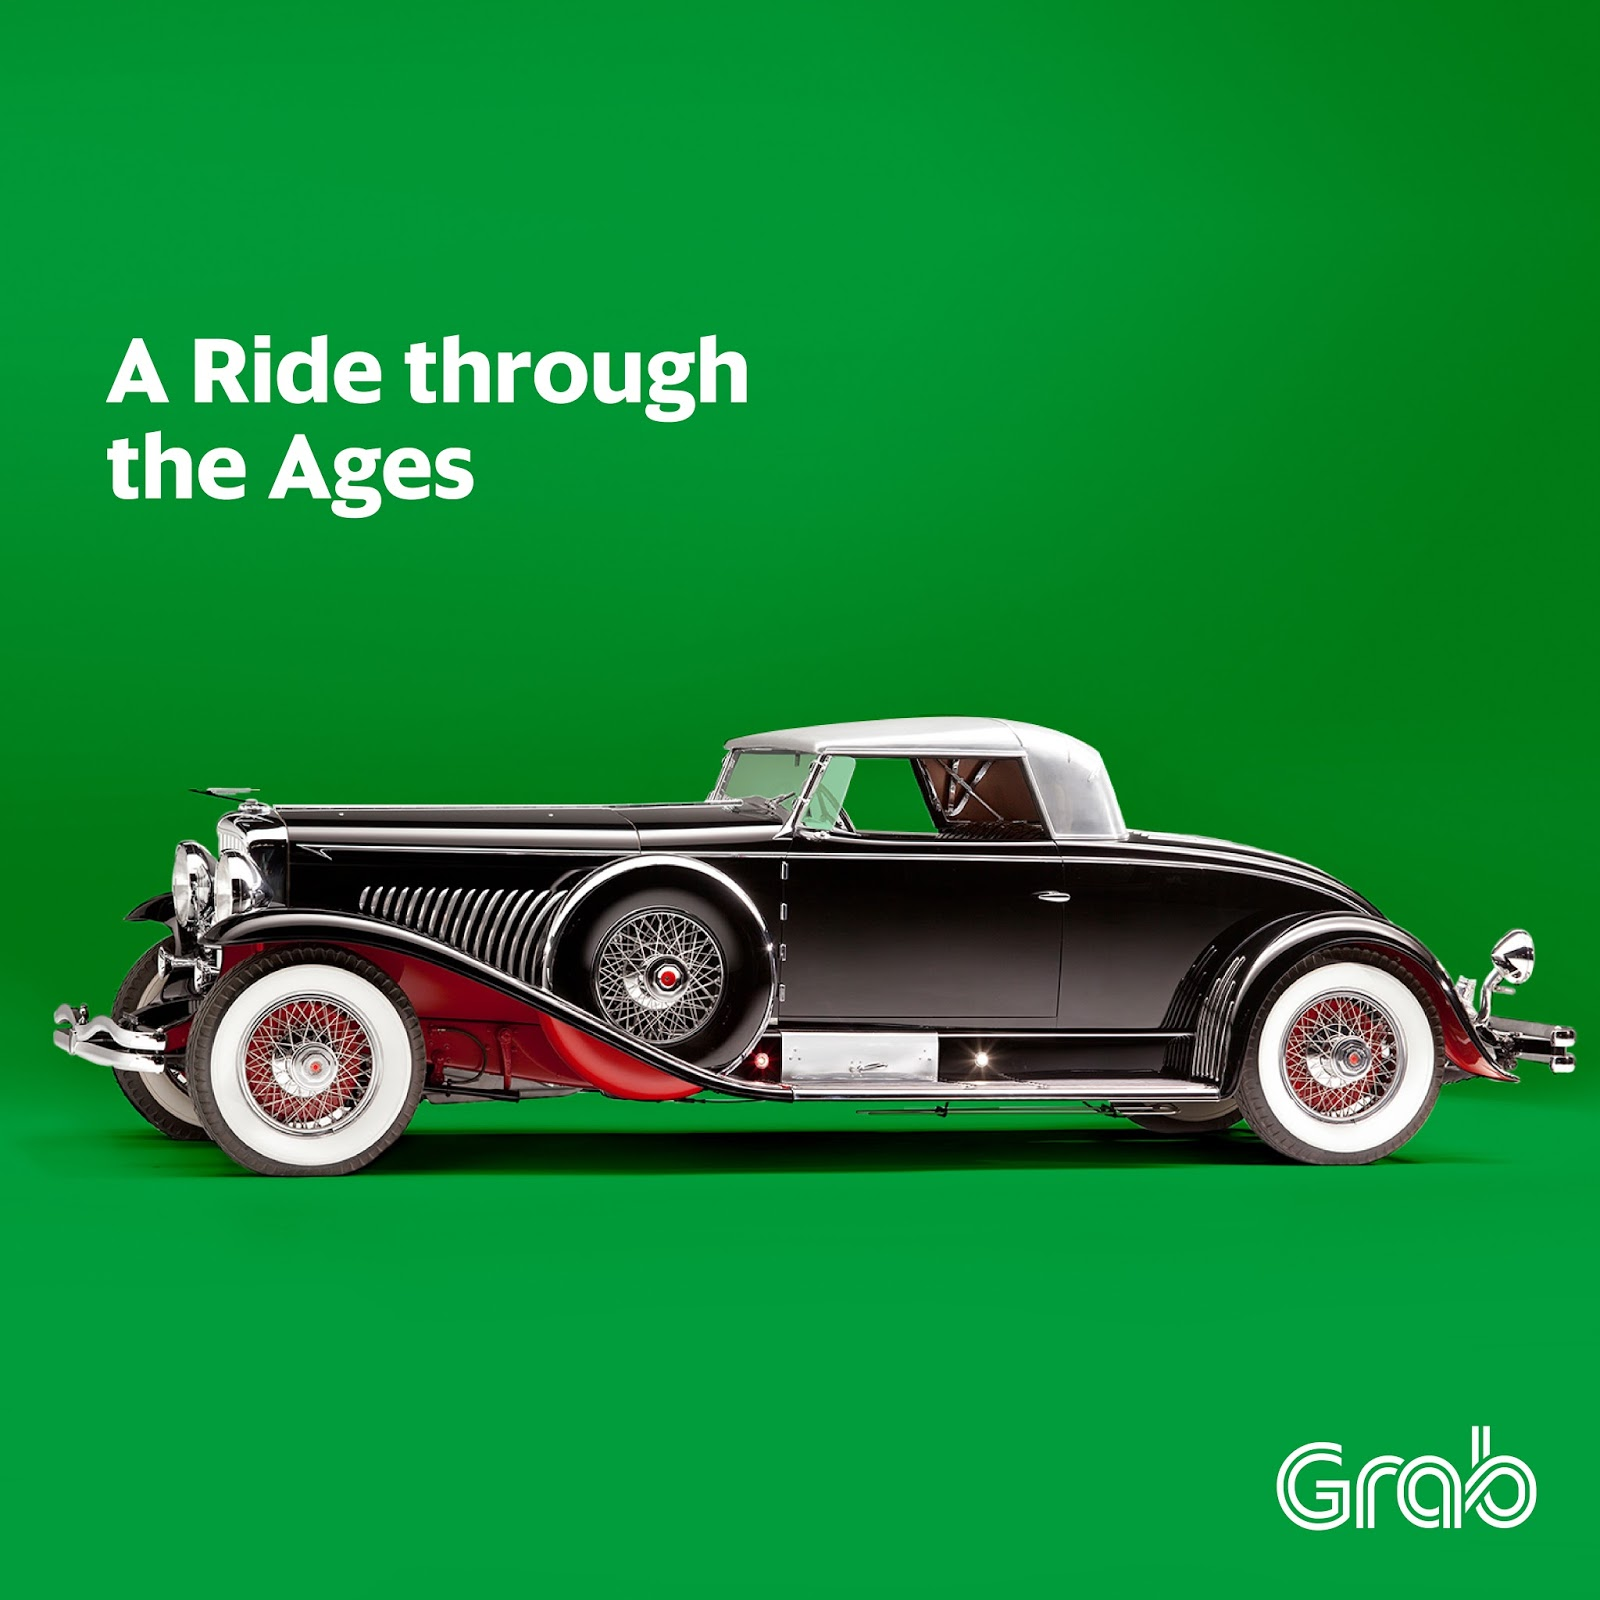 vintage grabcars to tour passengers around bgc from june 10 12 for independence day and grabs 4th anniversary